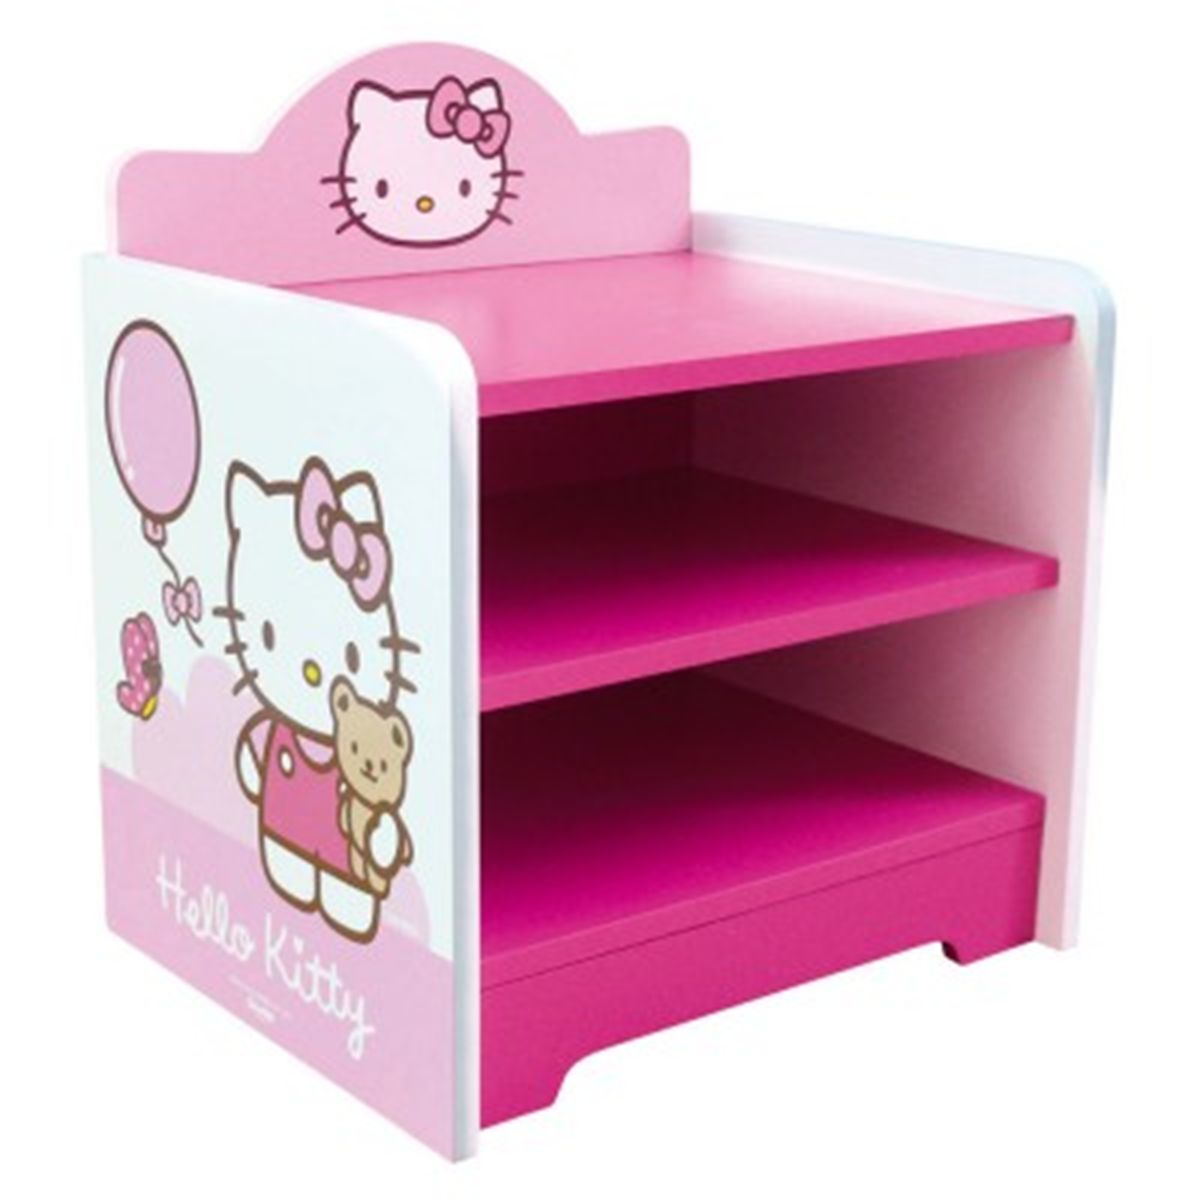 Table De Chevet Pirate chevet hello kitty